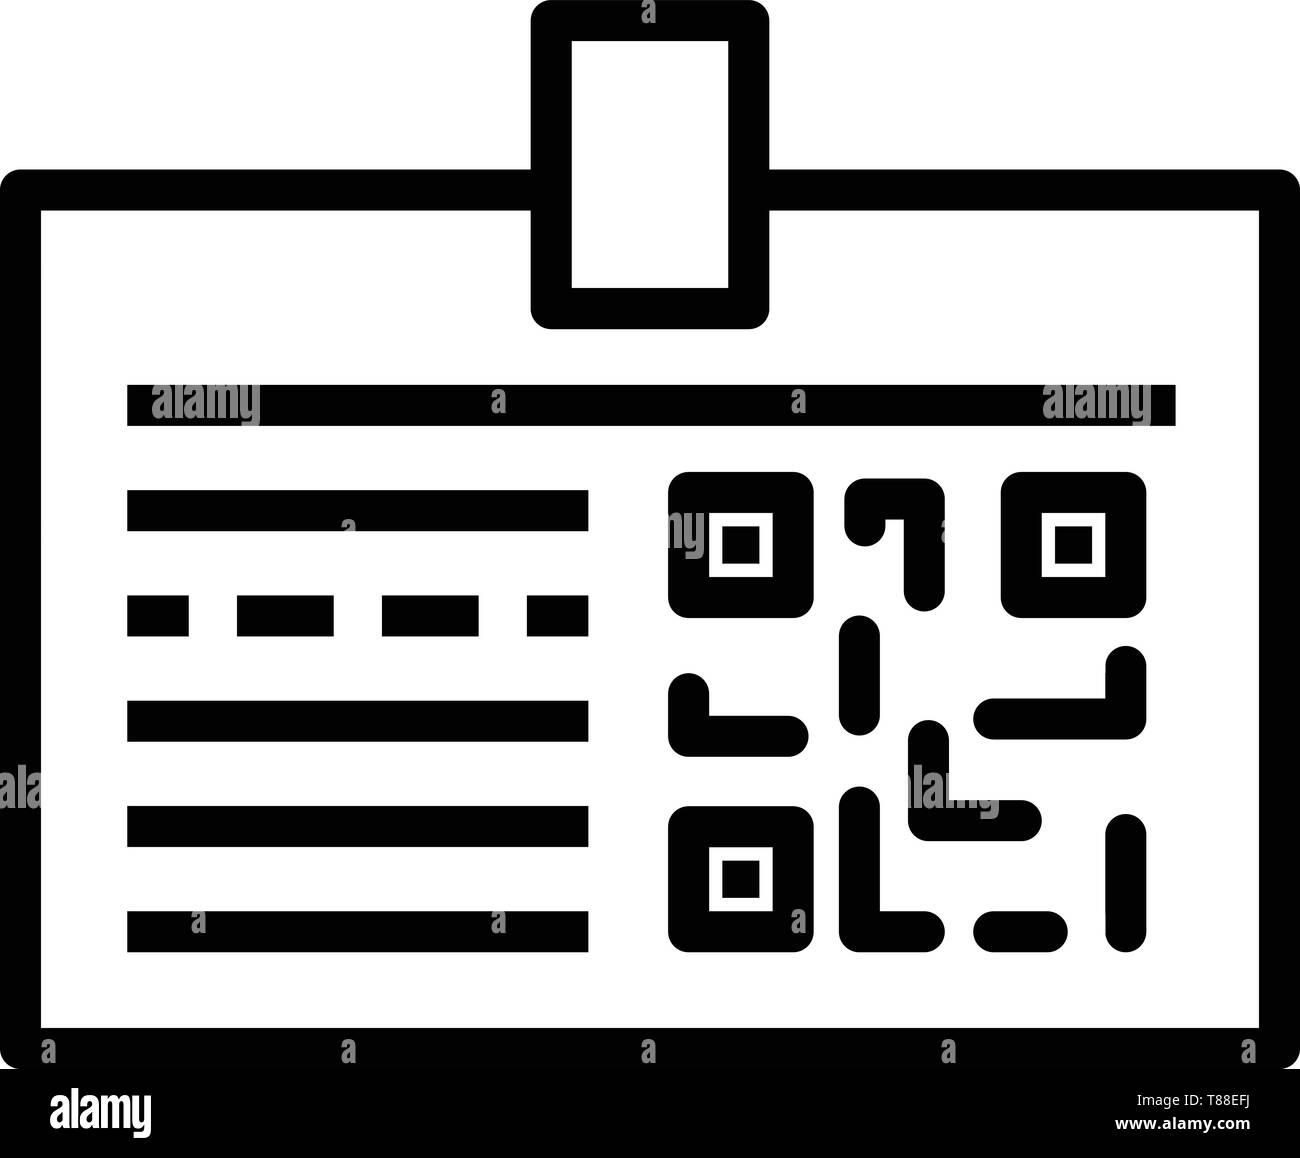 Badge with QR code icon, outline style Stock Vector Art